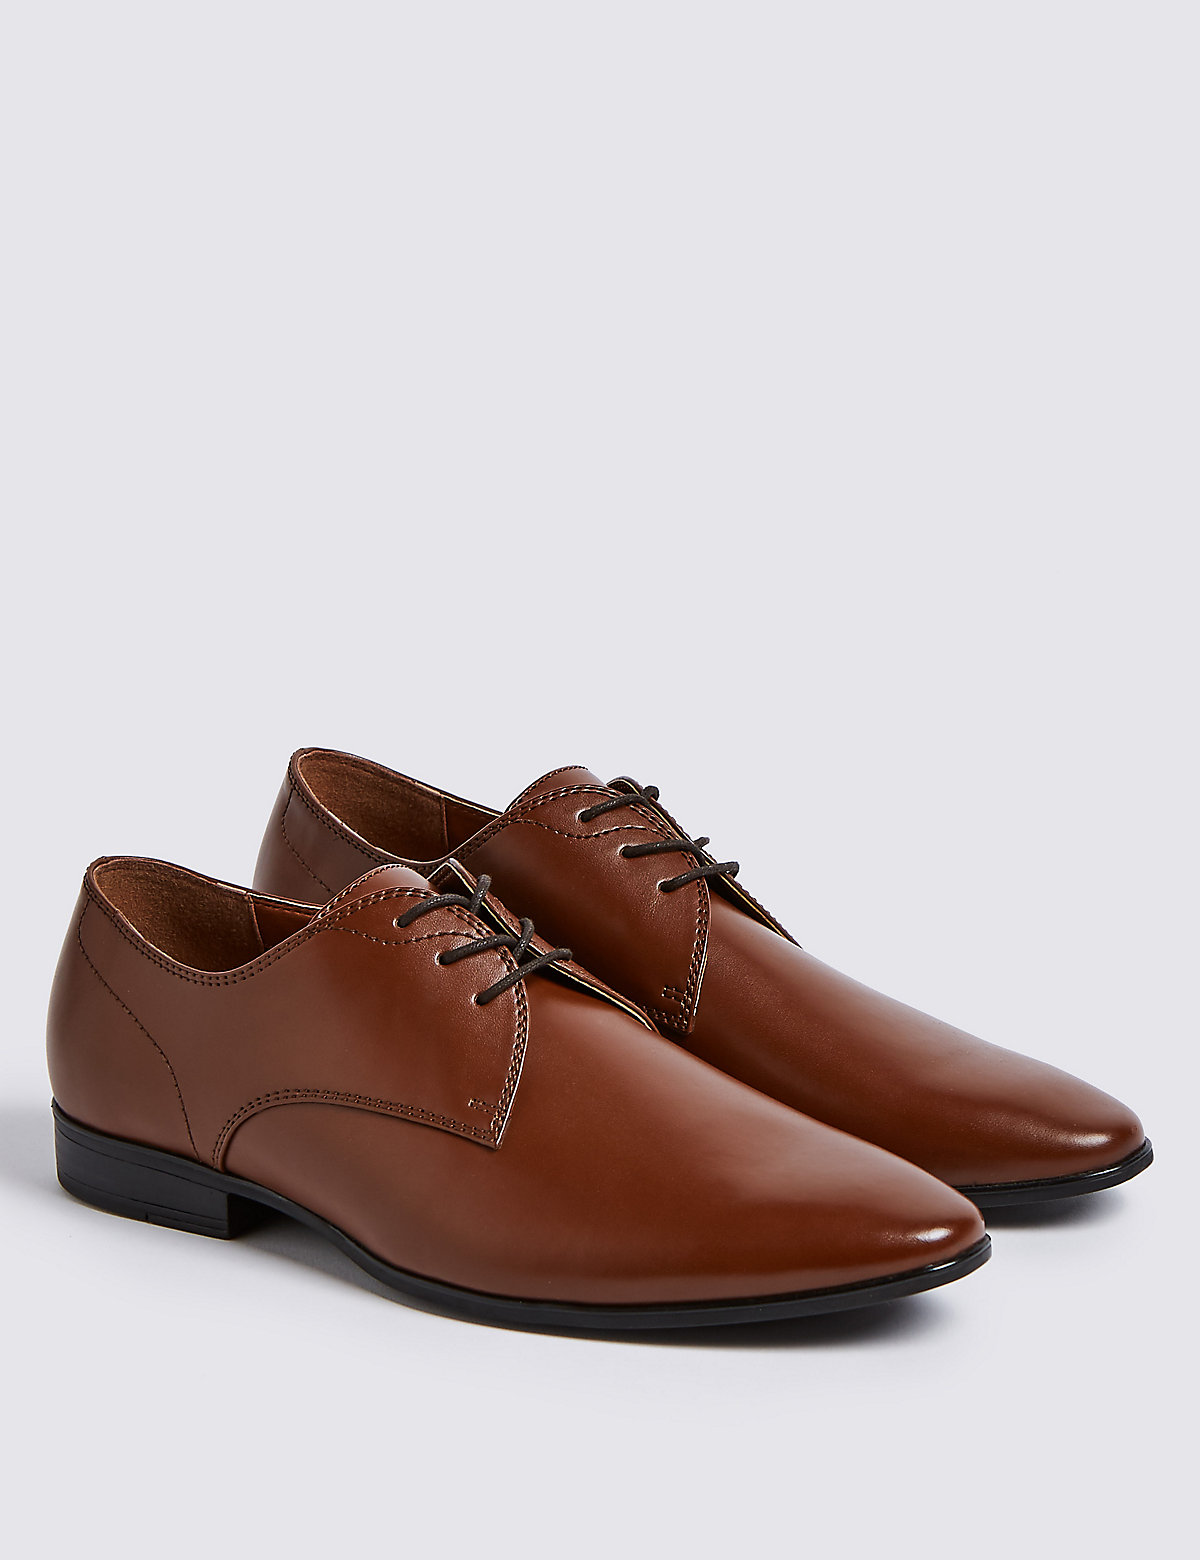 Marks & Spencer Brown Lace-up Derby Shoes